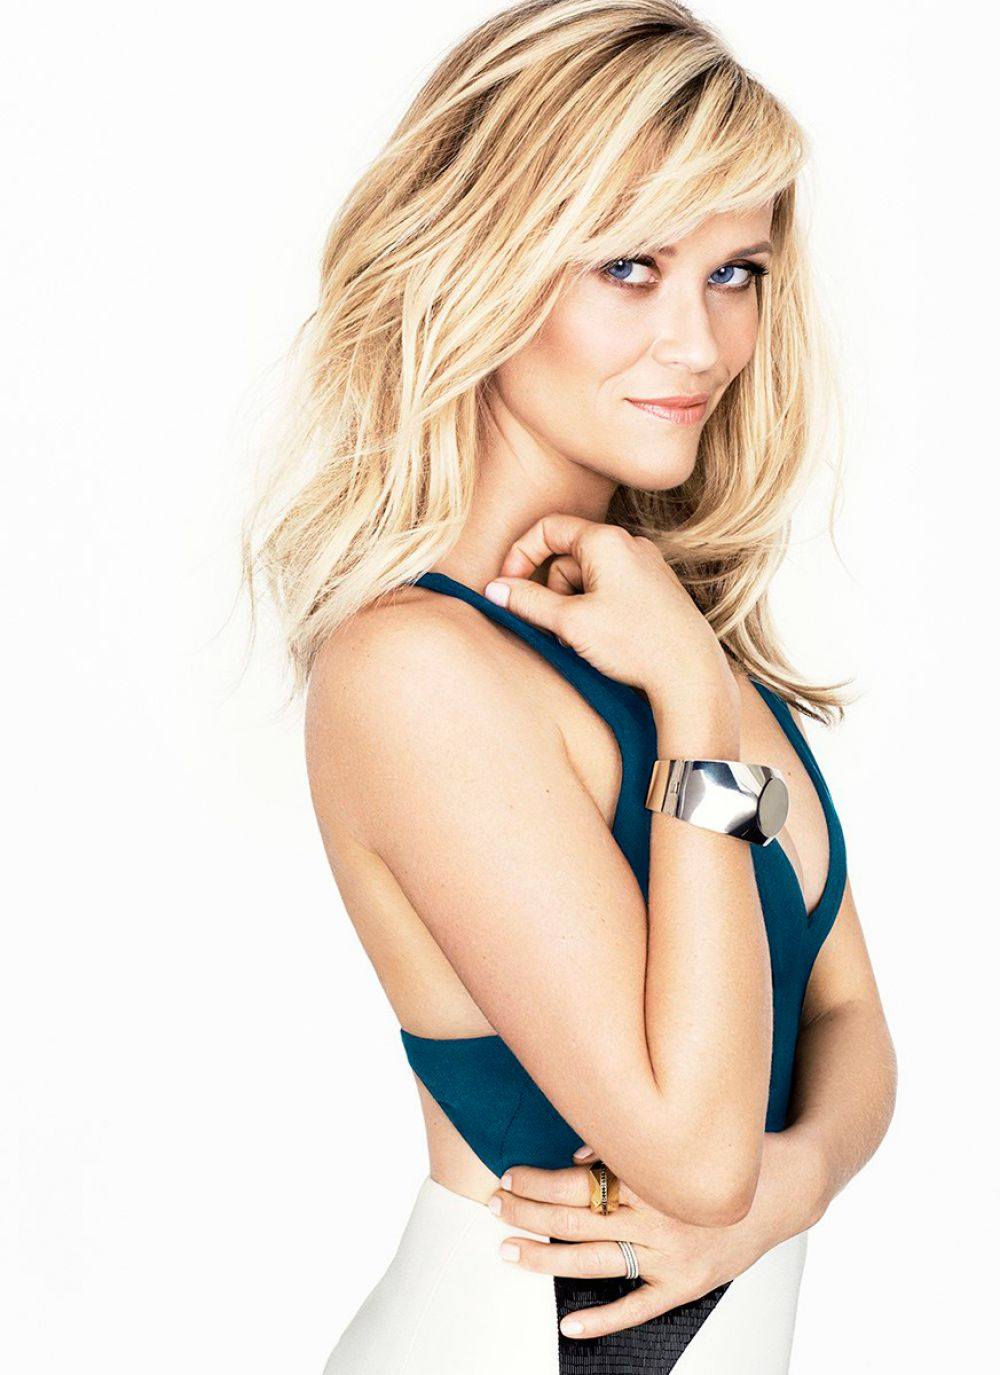 Reese Witherspoon In Glamour USA January 2015 - Celebzz - Celebzz